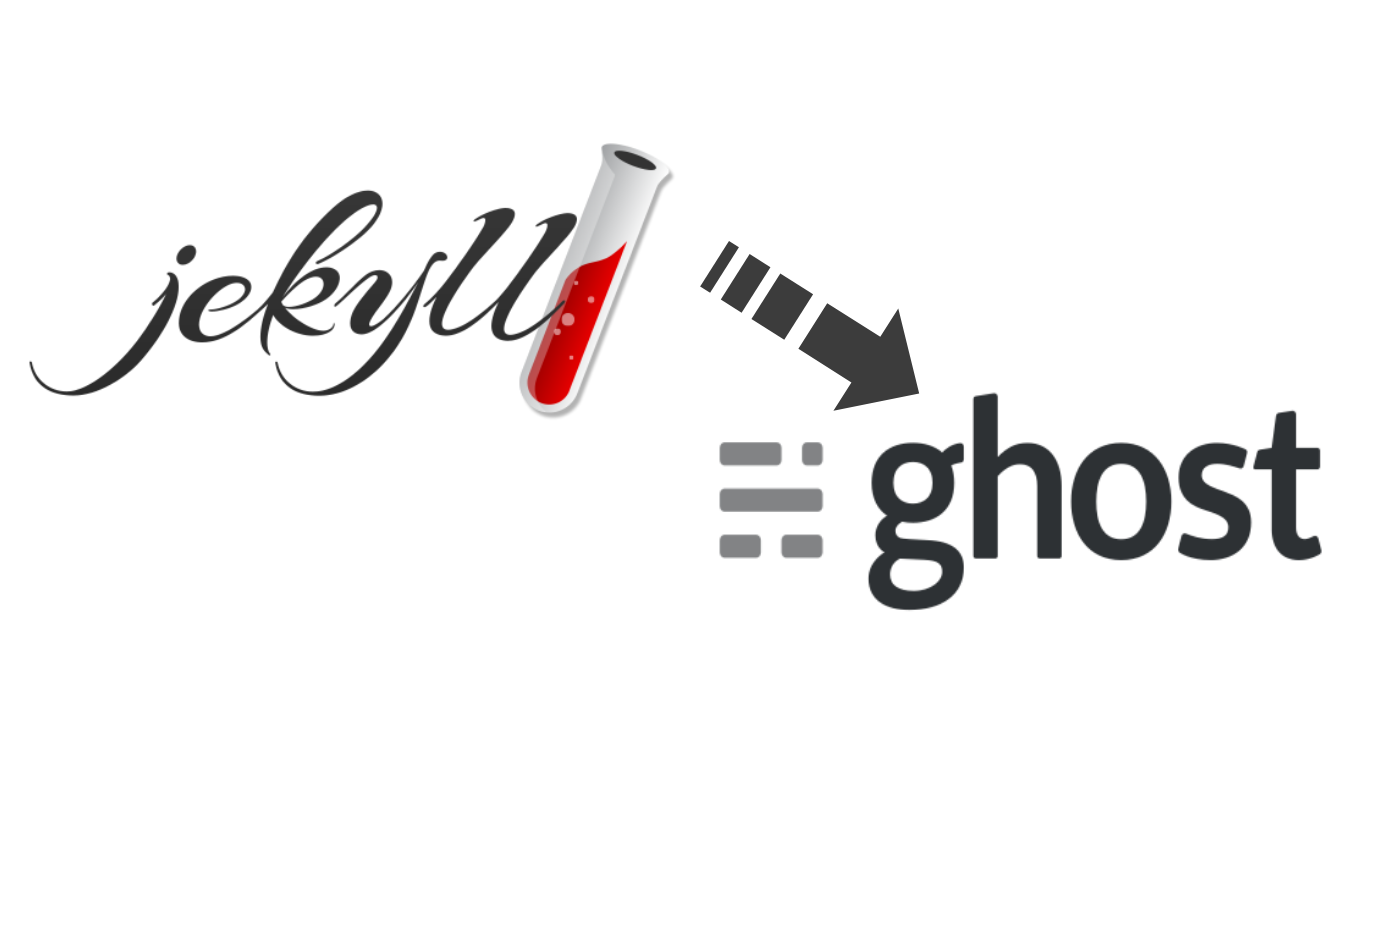 Moving from Jekyll to Ghost